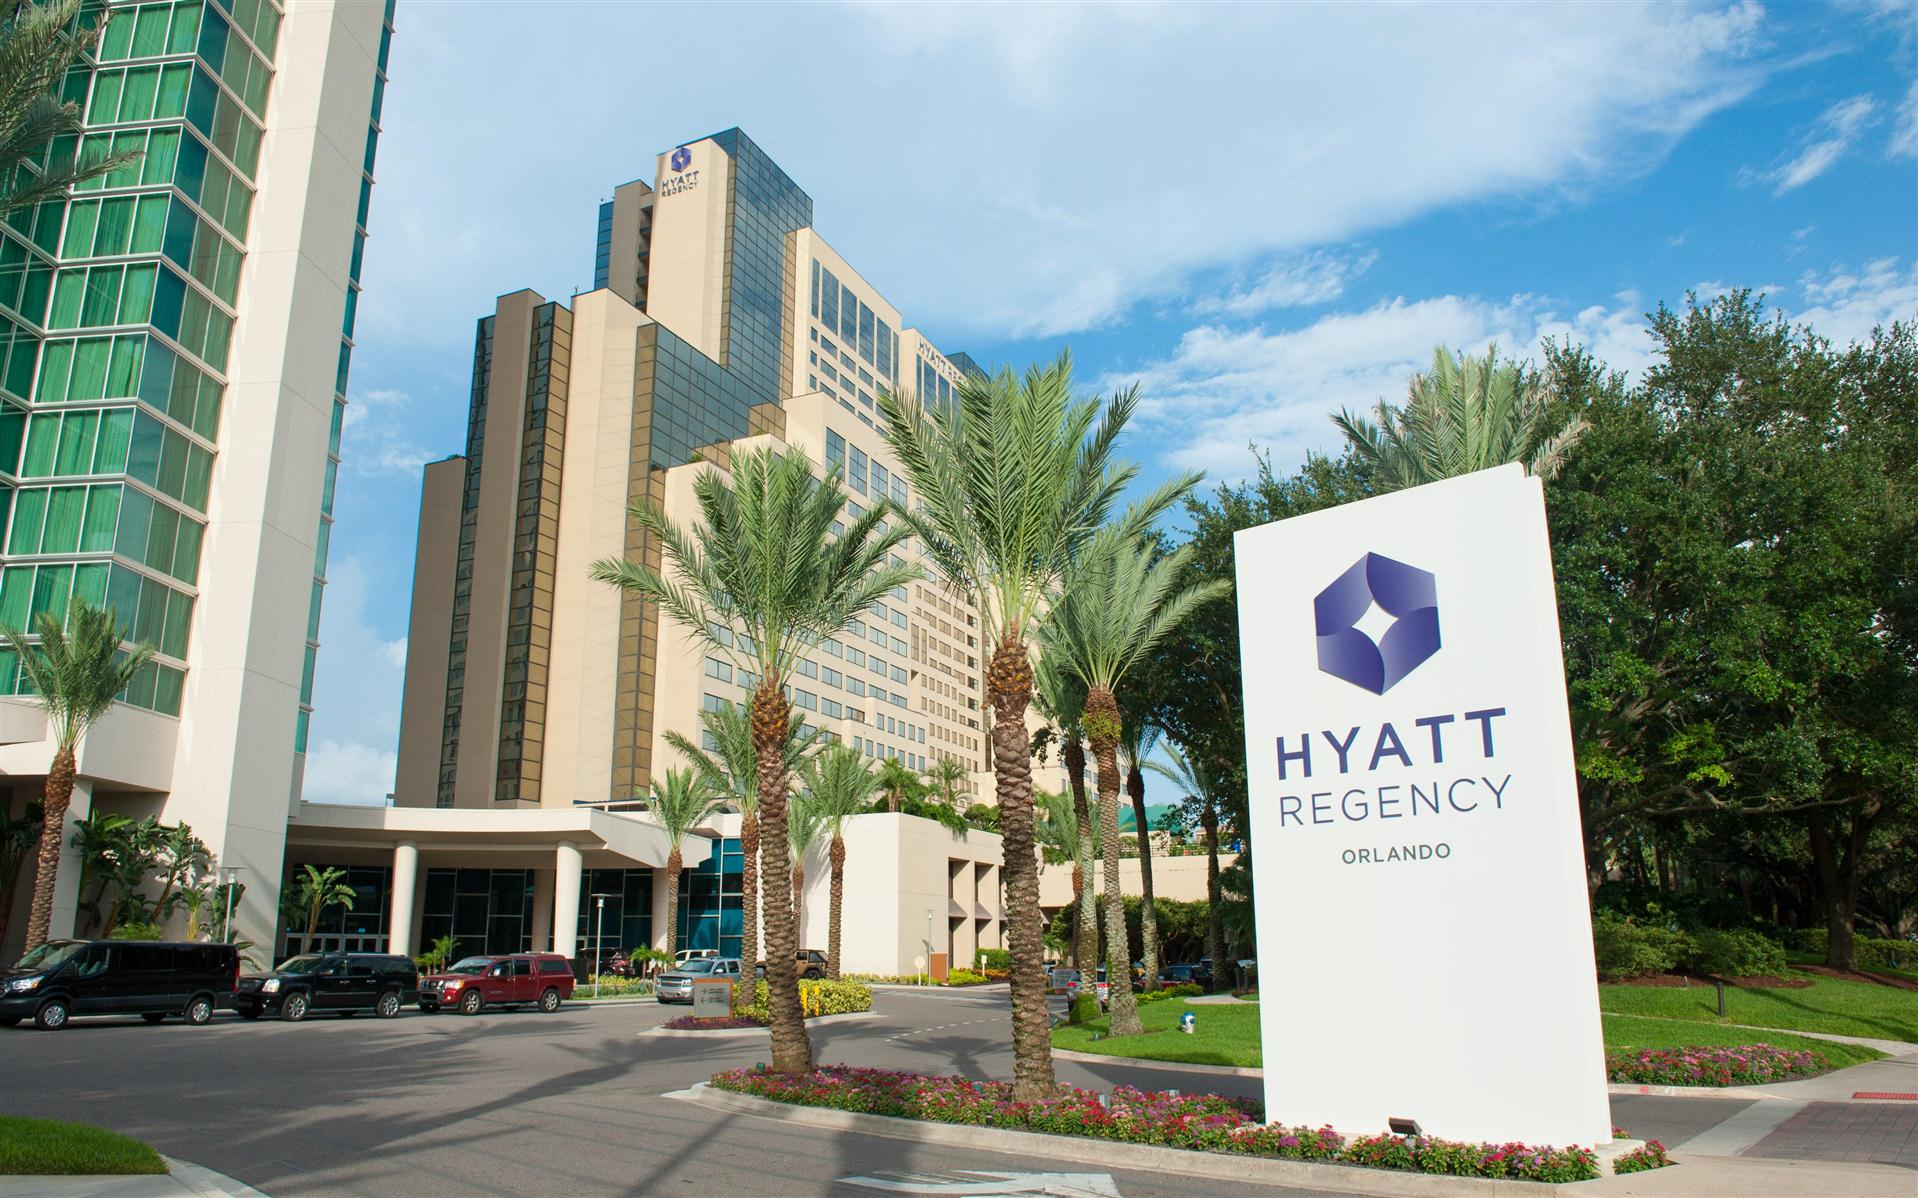 Pace is proud to be partnering again with the Hyatt Regency Orlando as our host hotel for the All About Girls Summit.